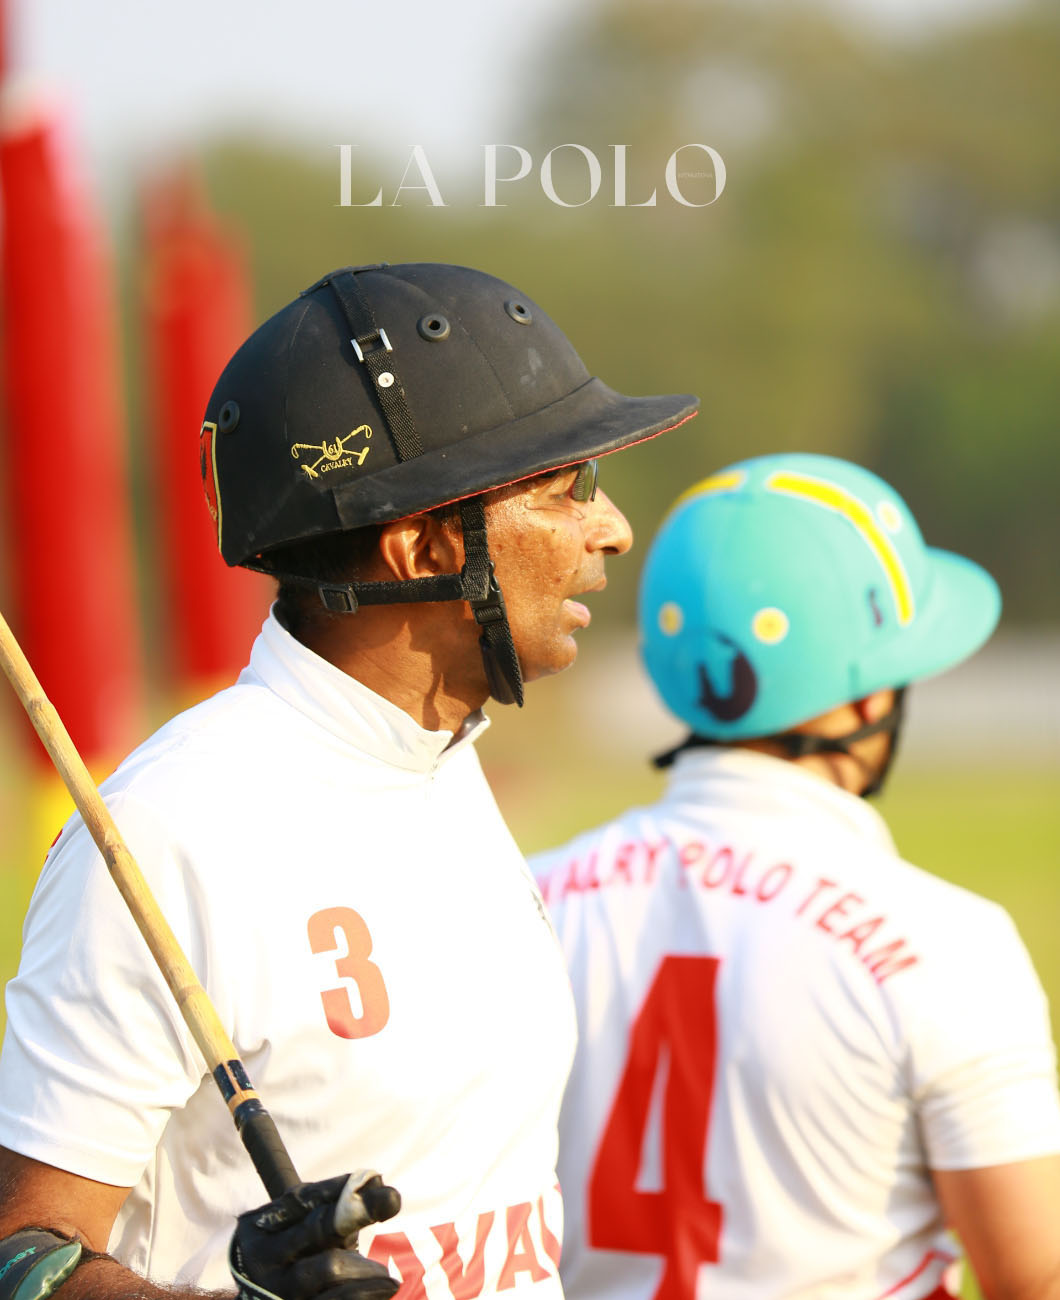 col-ravi-rathore-cavalry-team-delhi-polo-season-india-la-polo